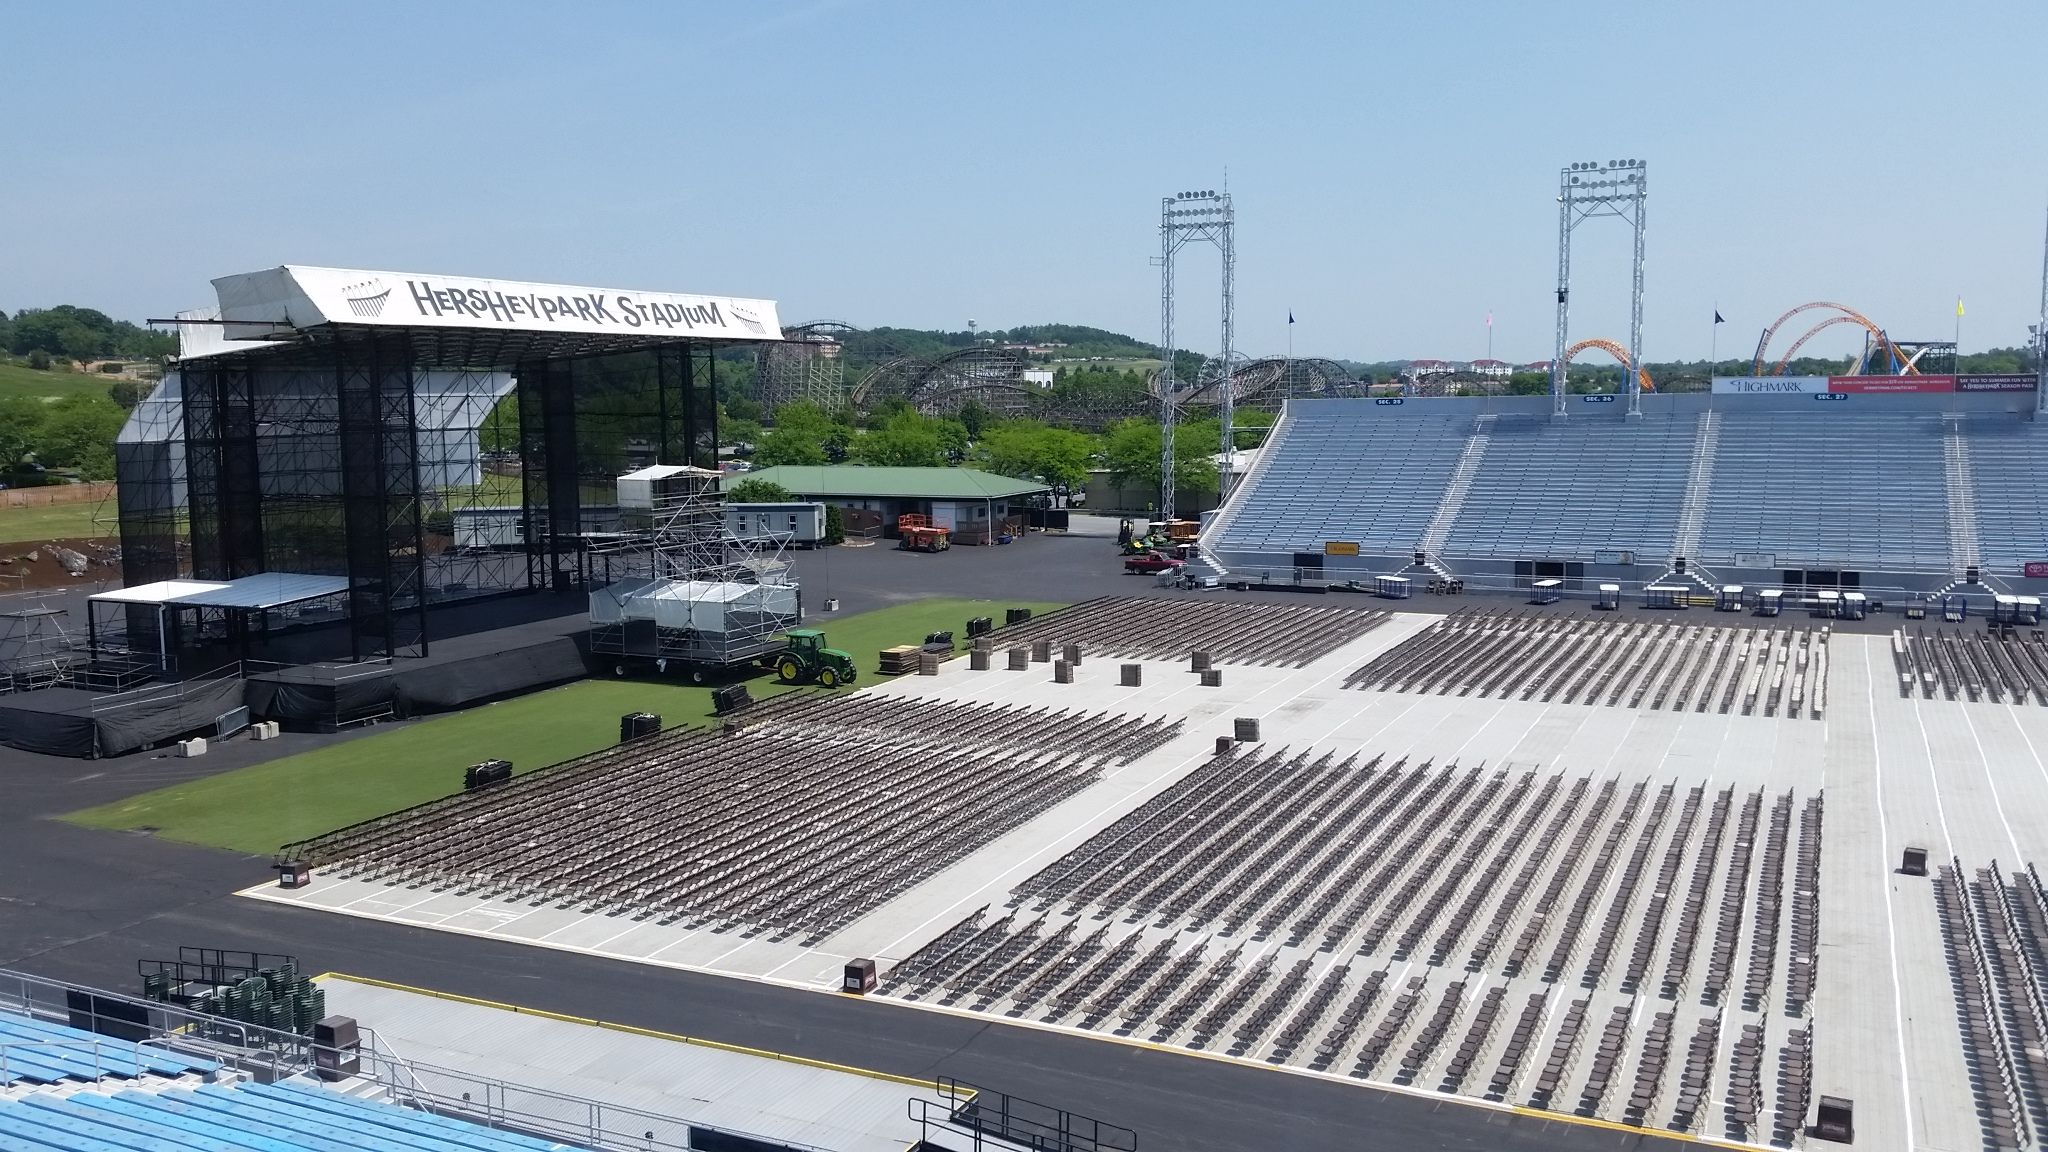 Hersheypark Stadium Is Ready For A Concert Hersheypa Seating Charts Stadium Hershey Park